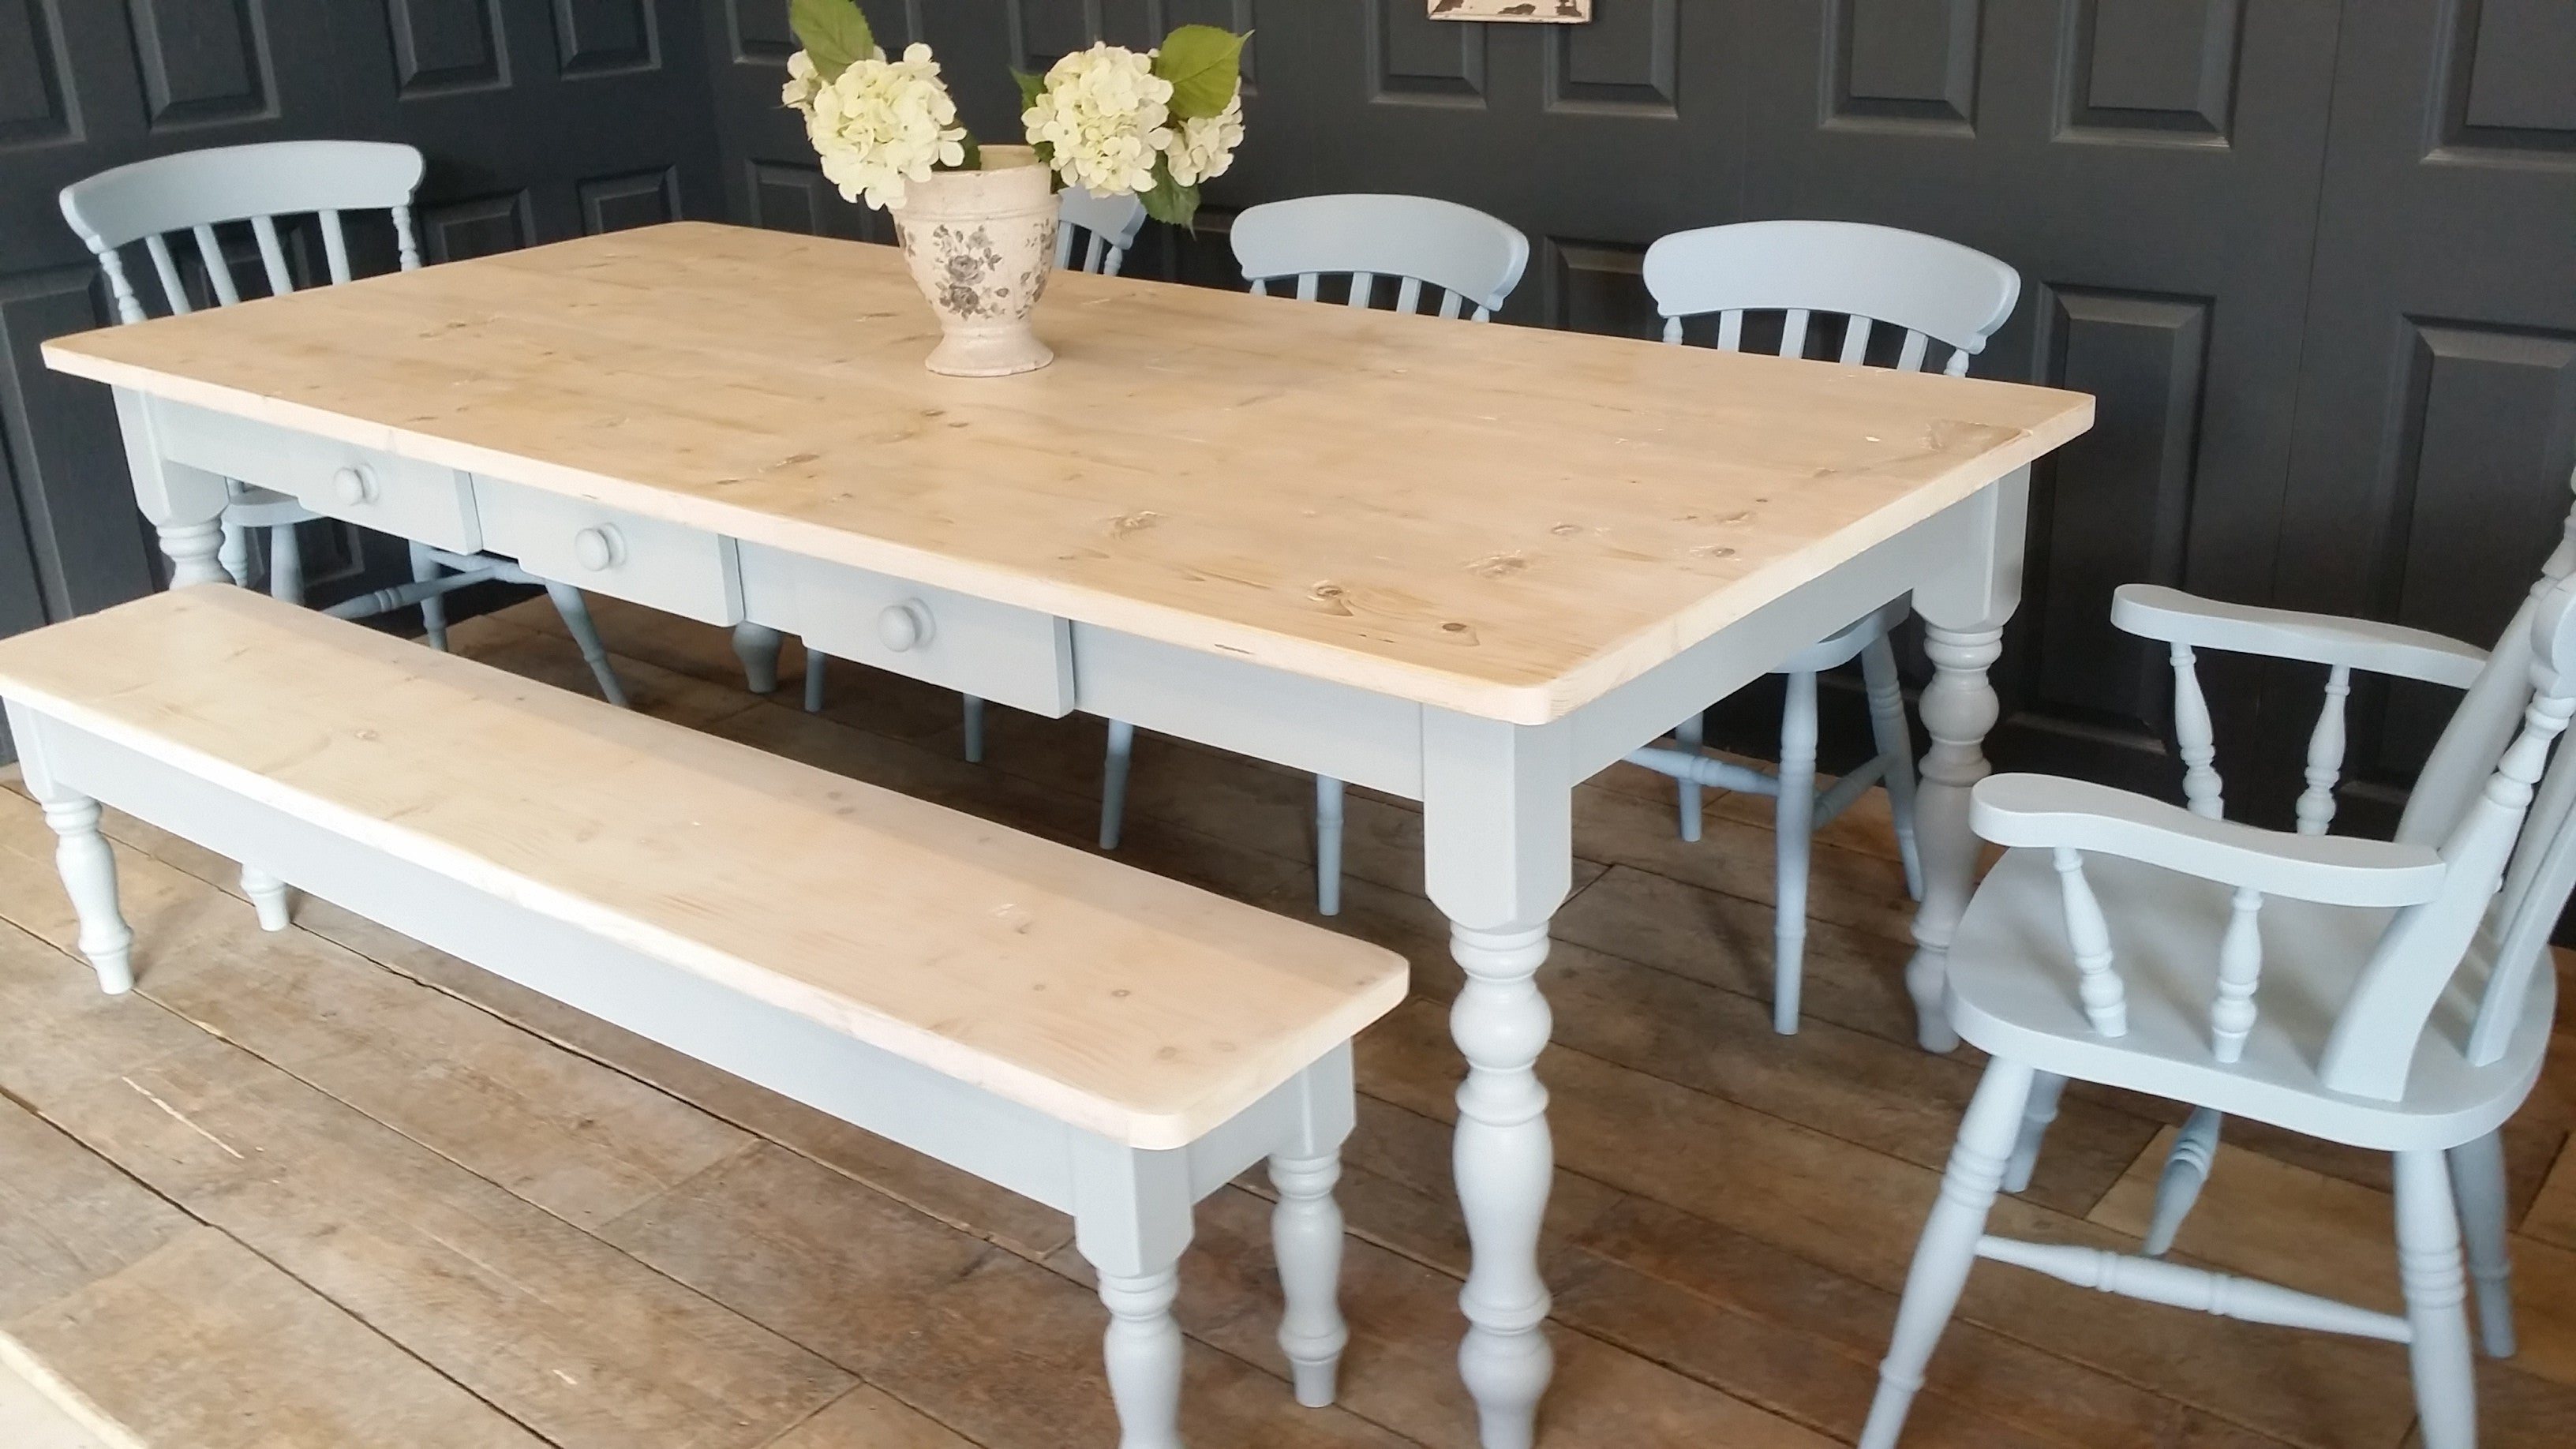 Country Kitchen Dining Table Bespoke Farmhouse Dining Tables Handmade With Rustic Reclaimed